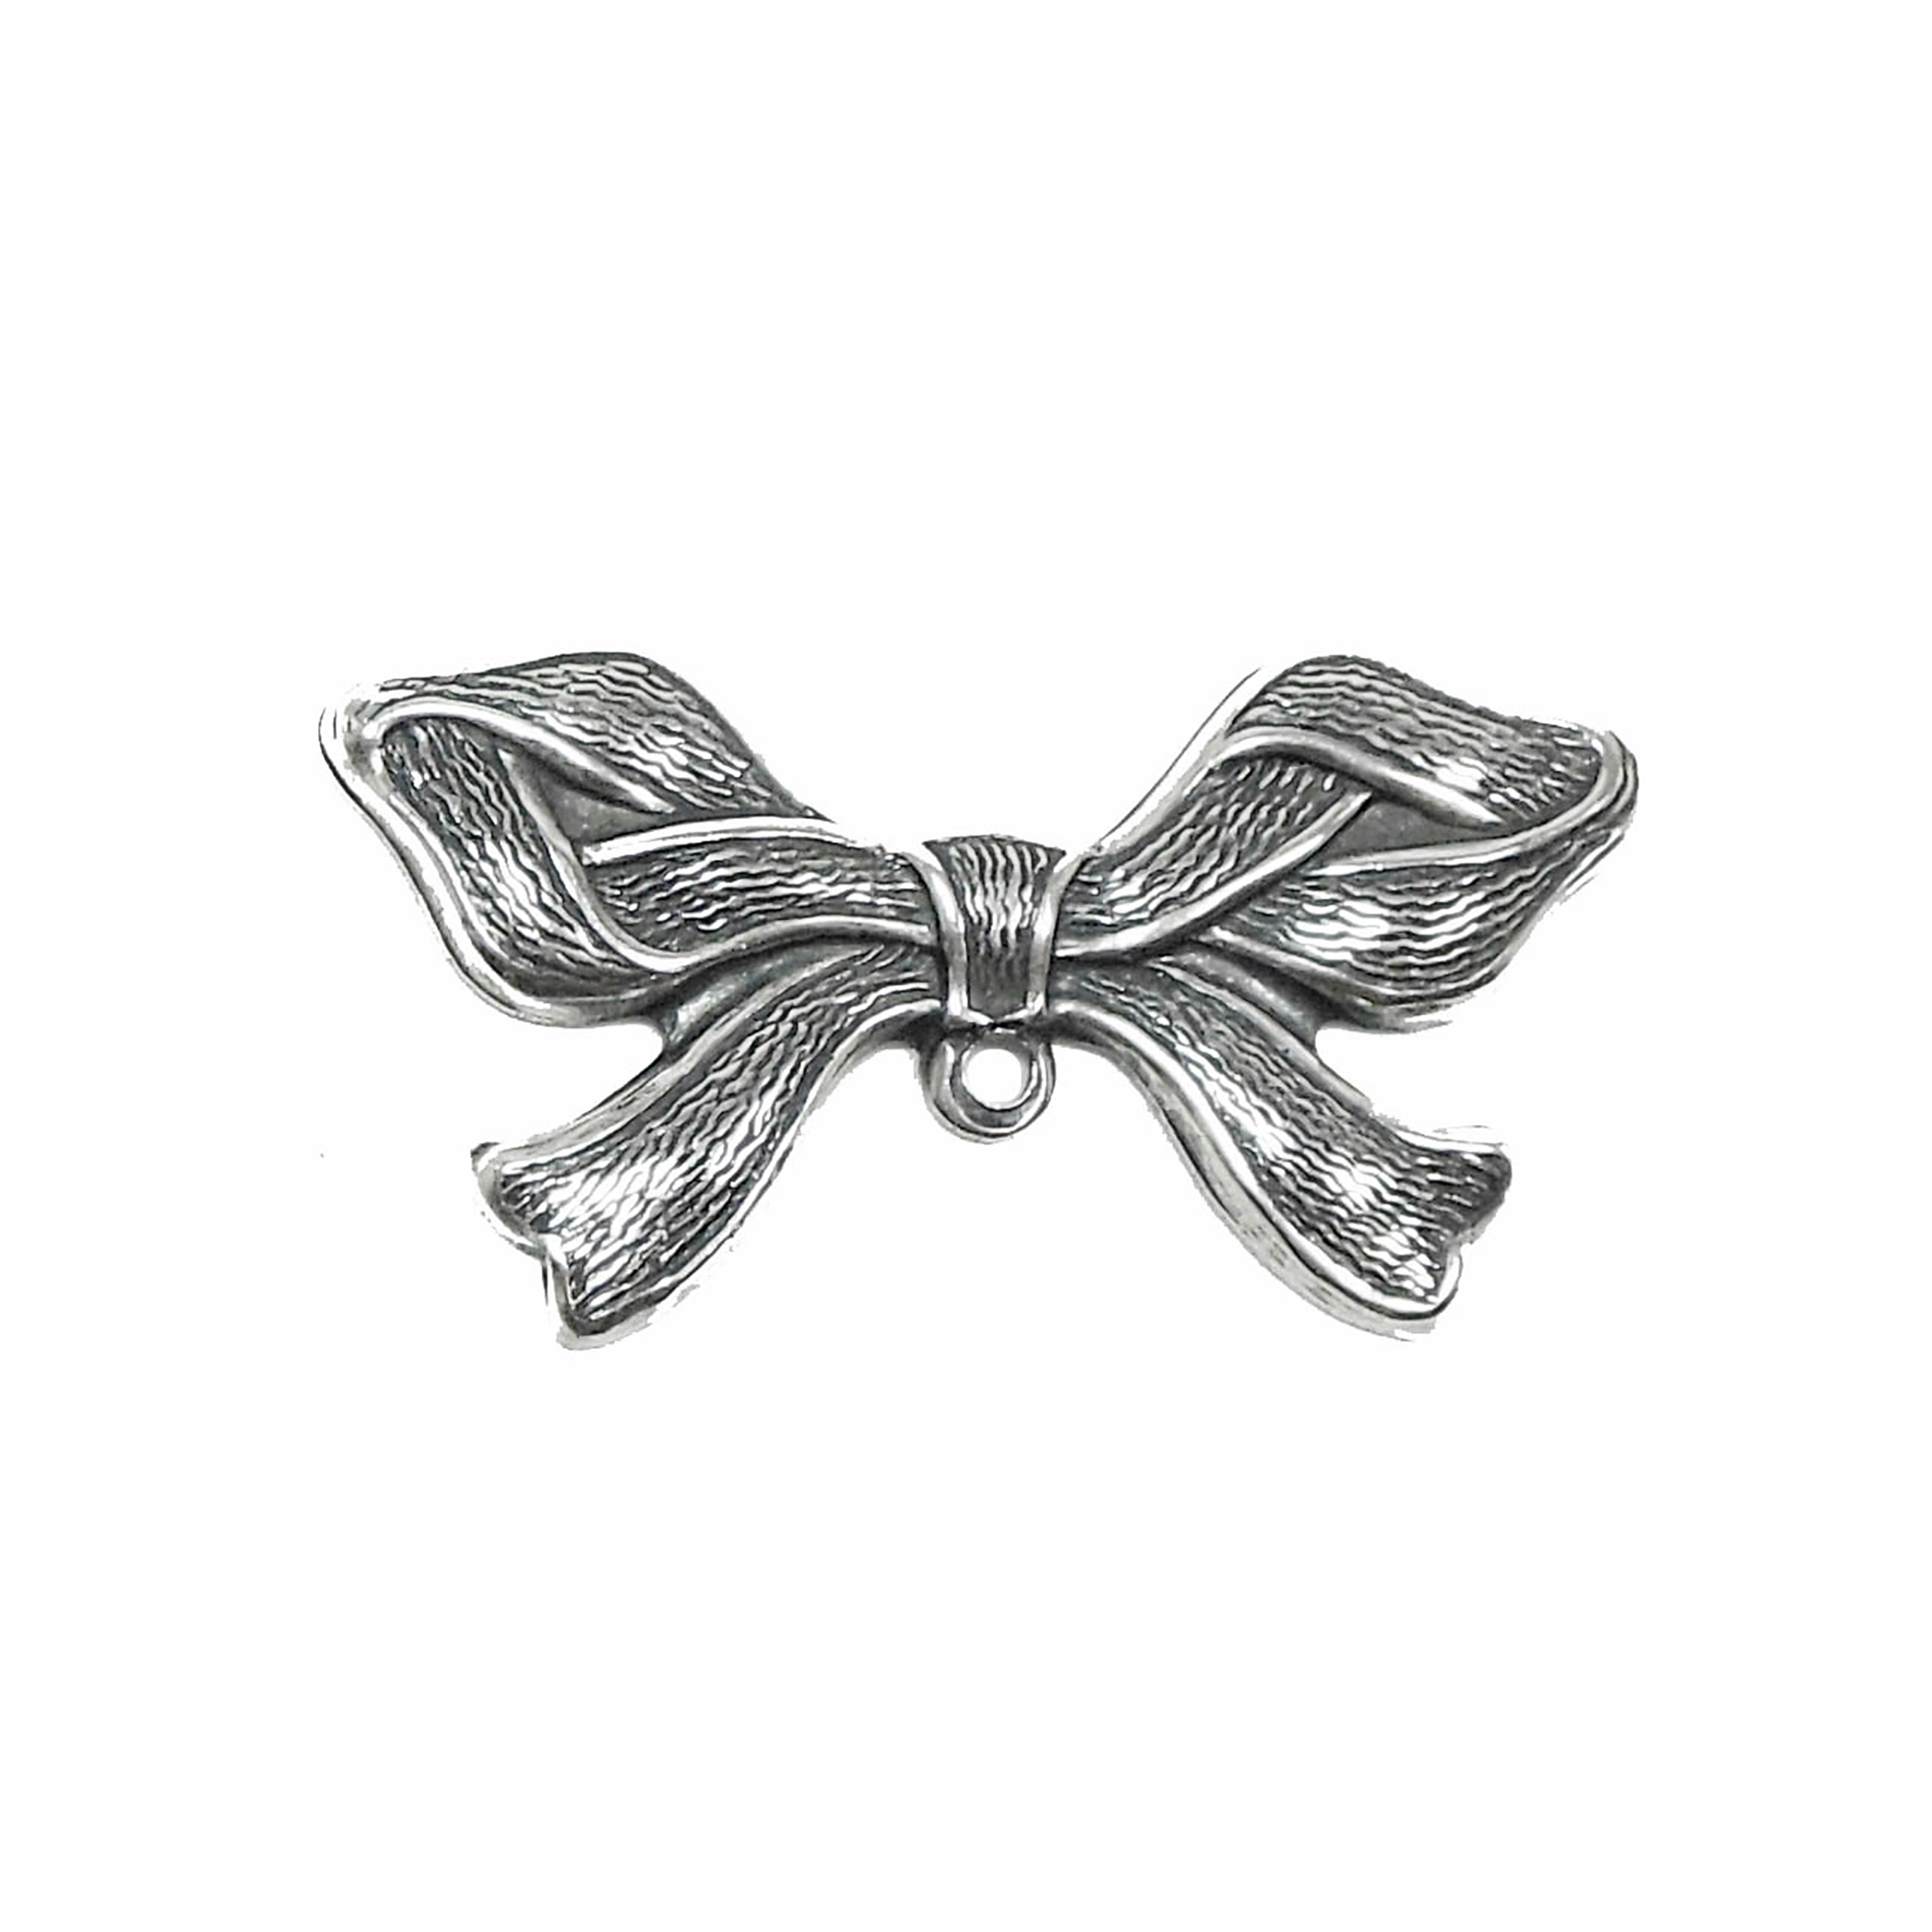 brass bow, ribbon jewelry, silver plate, 02171, antique silver, silverware silver plate, charm enhancer, vintage jewelry supplies, US made, nickel free, Bsue Boutiques, jewelry making supplies